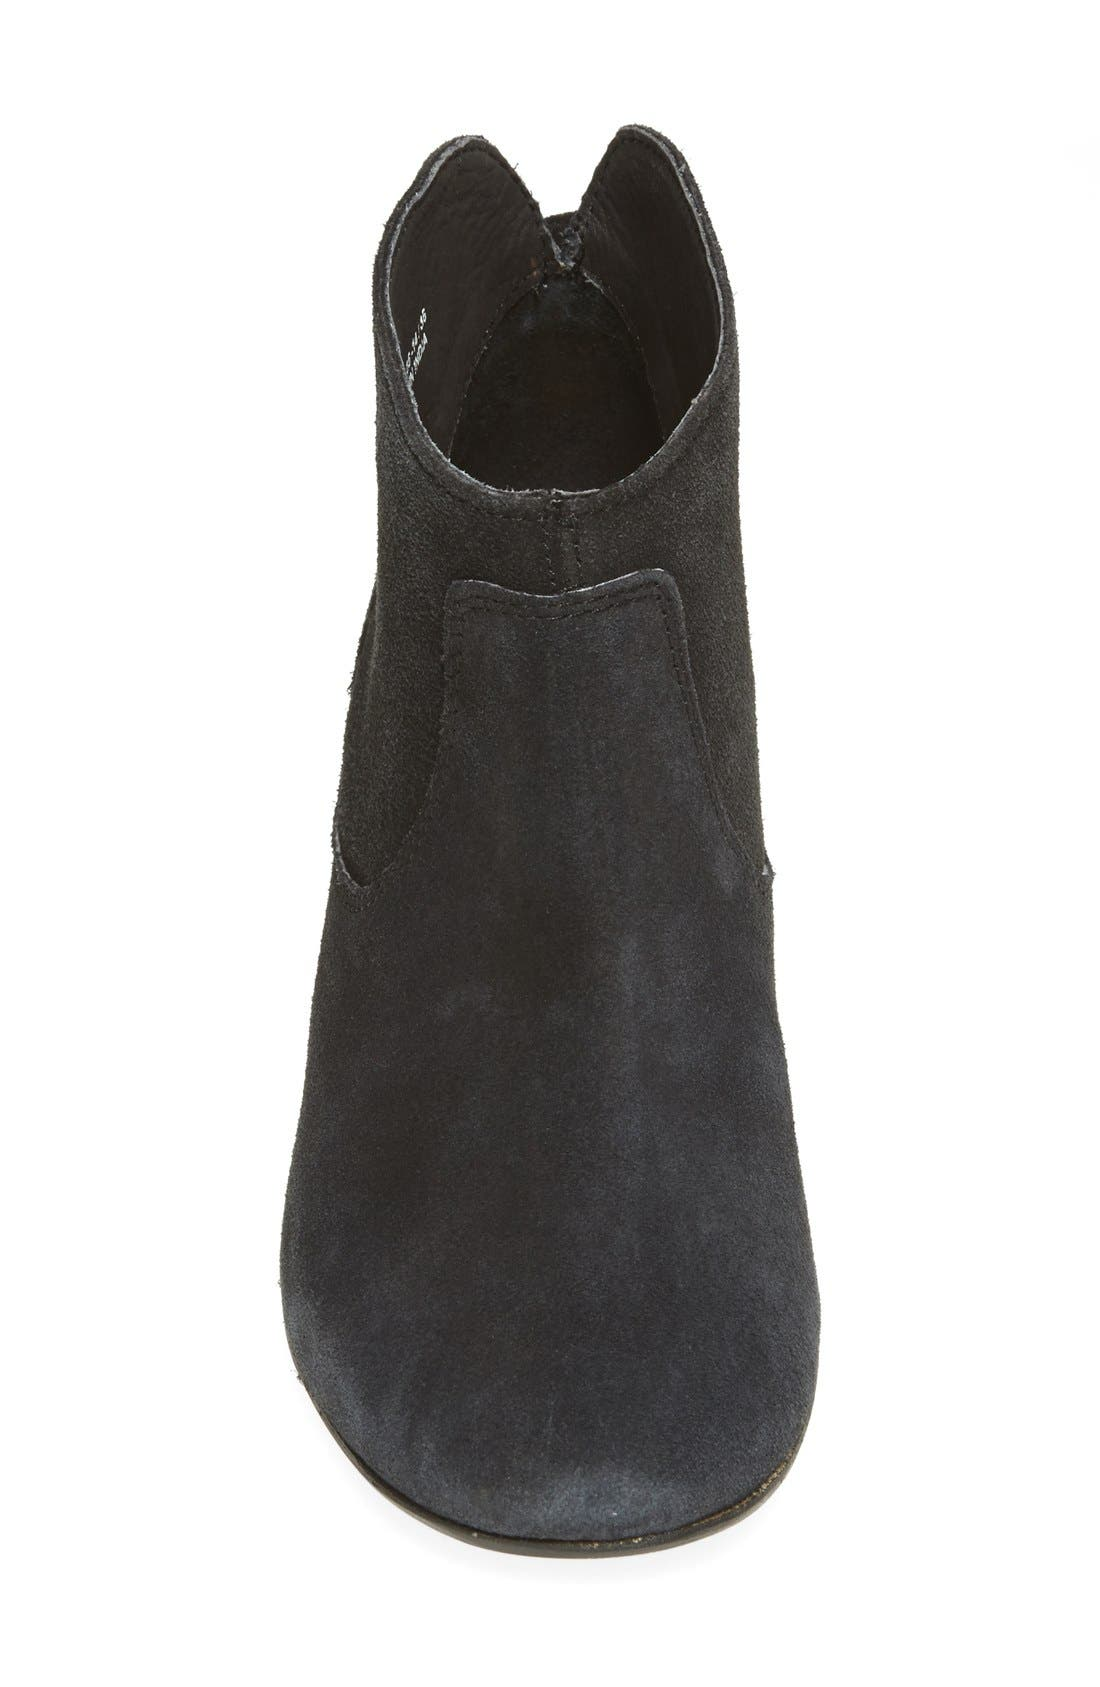 H BY HUDSON, 'Kiver' Suede Bootie, Alternate thumbnail 2, color, 001